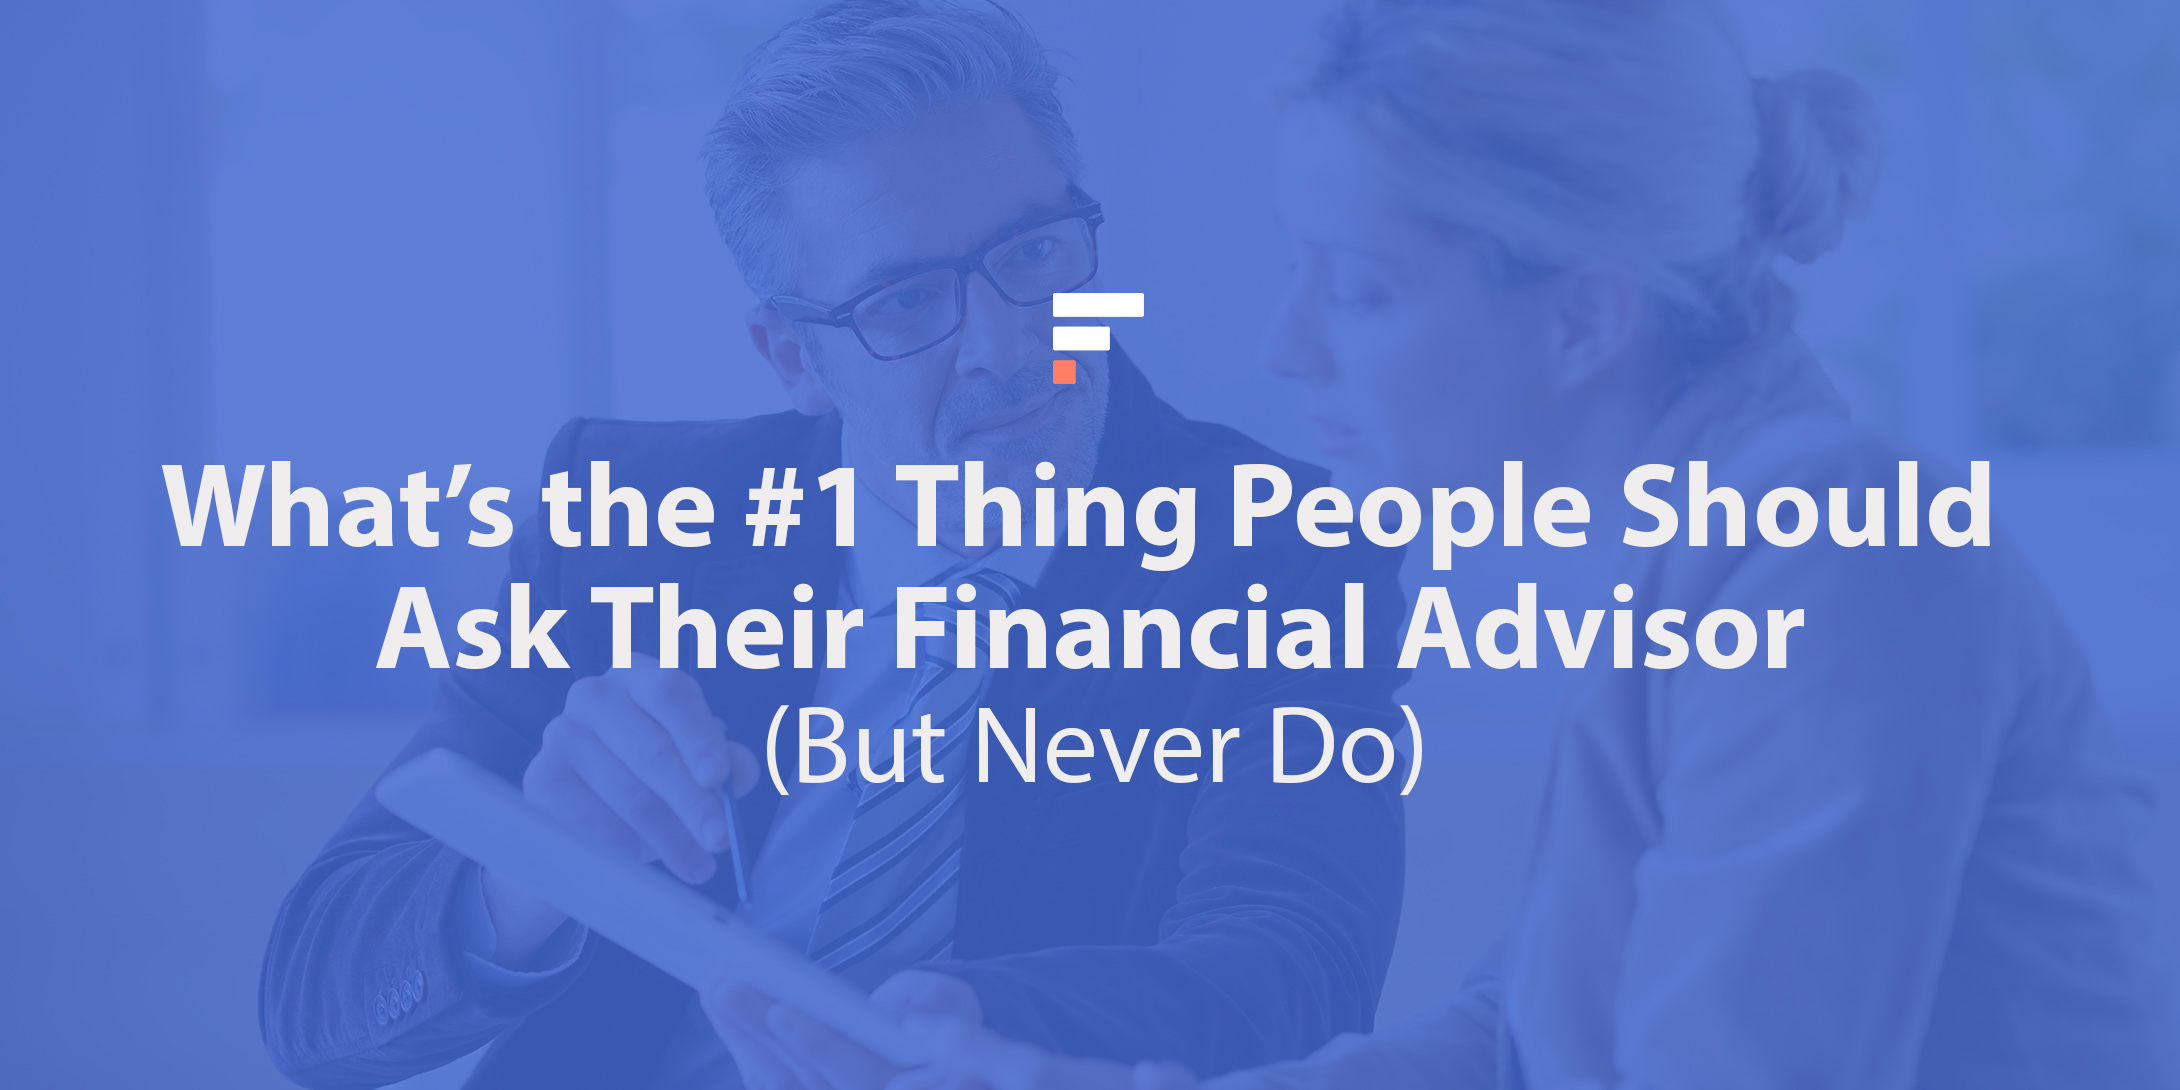 What to ask a financial advisor